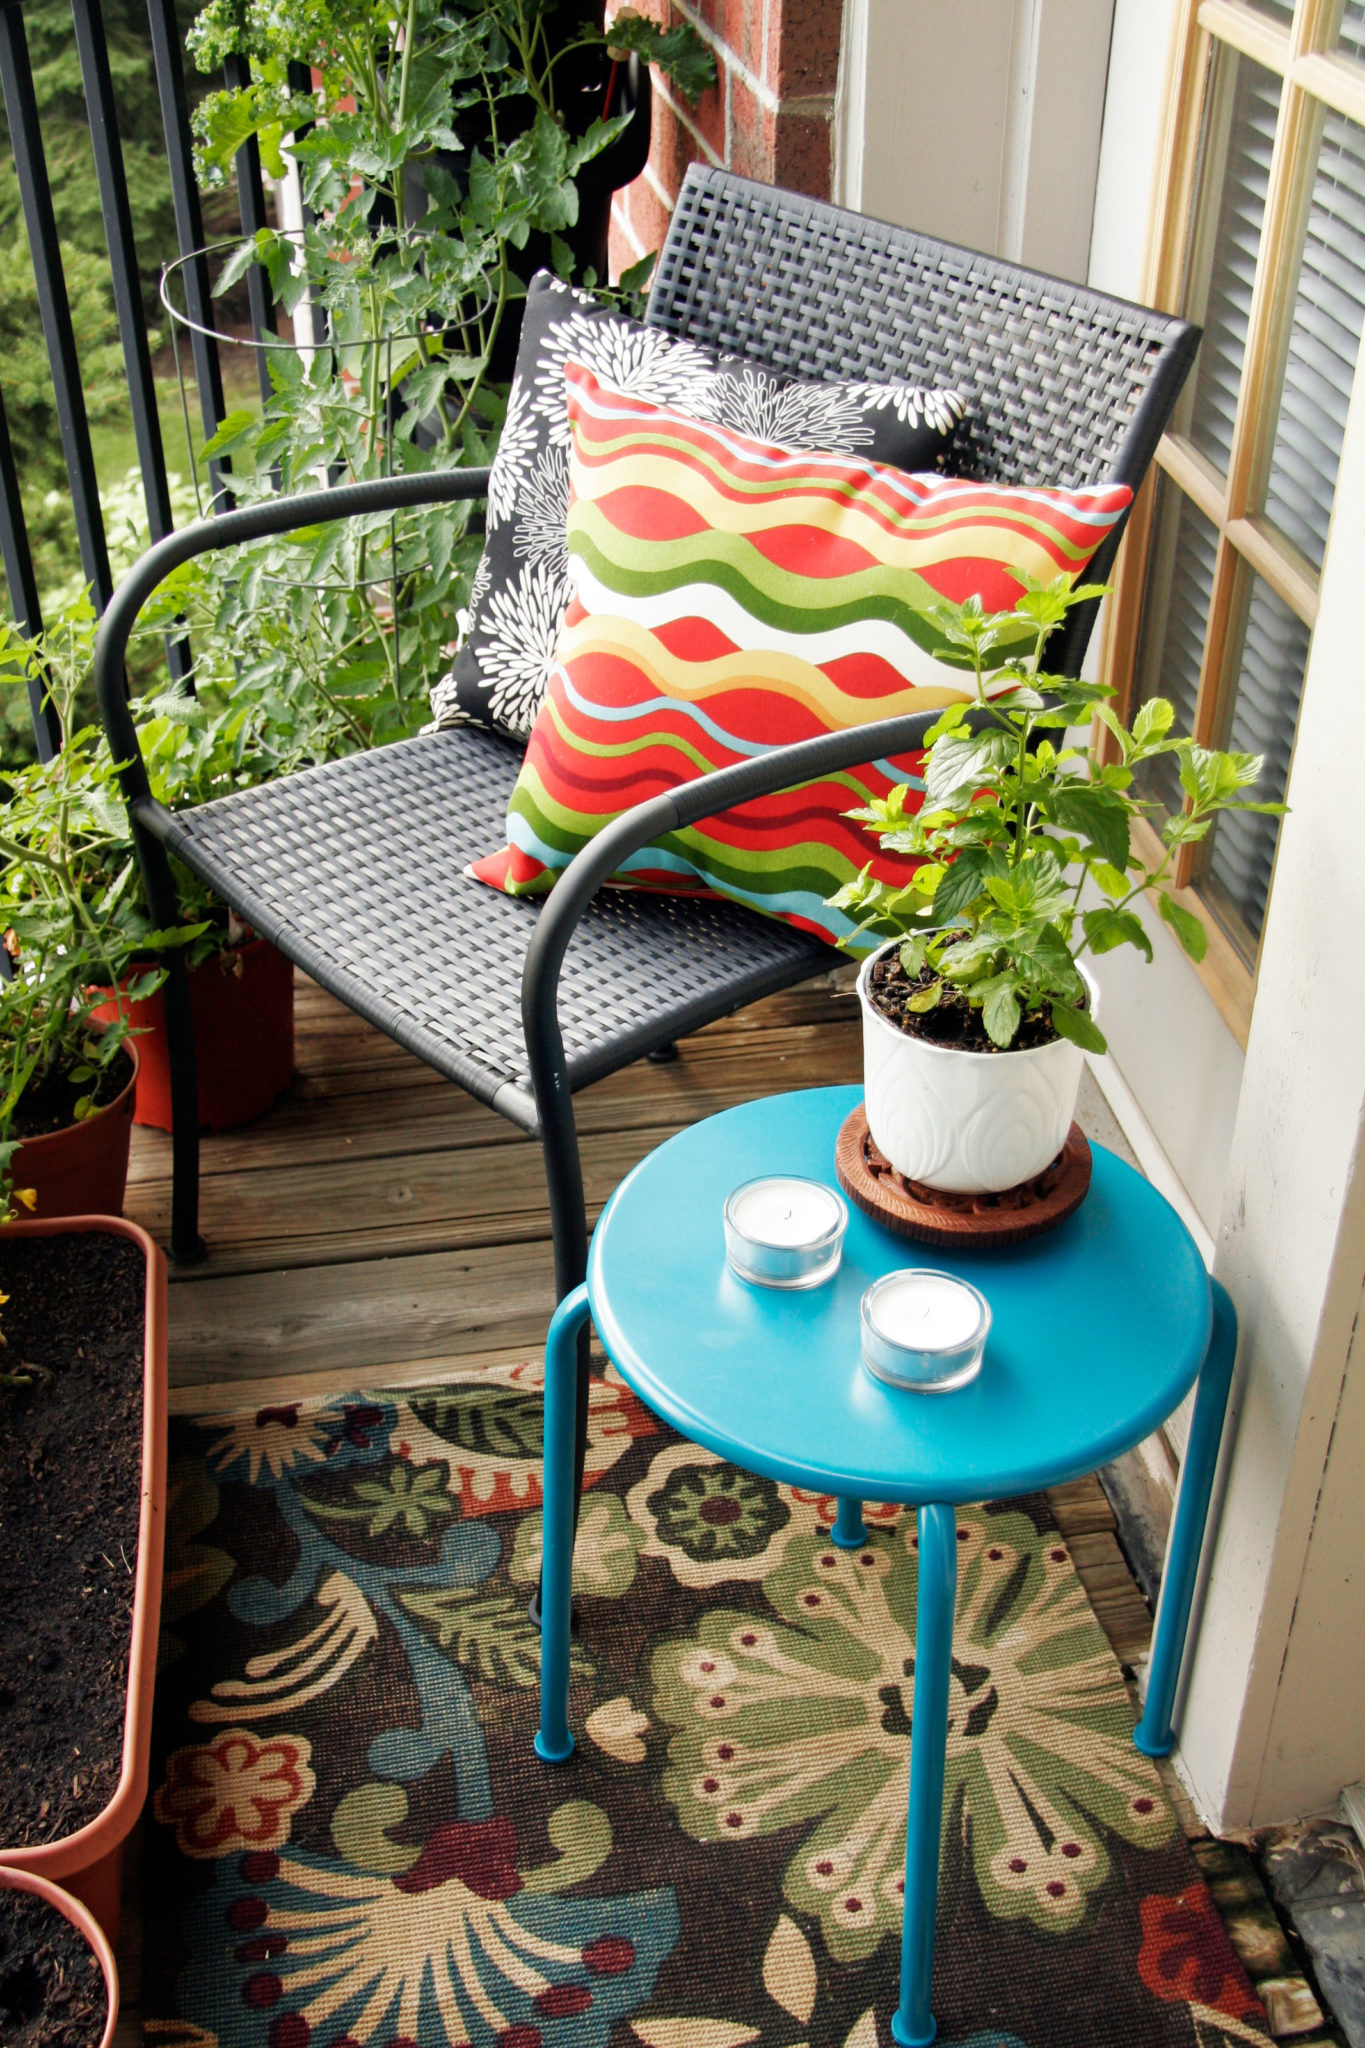 Small balcony with a tiny decorative table